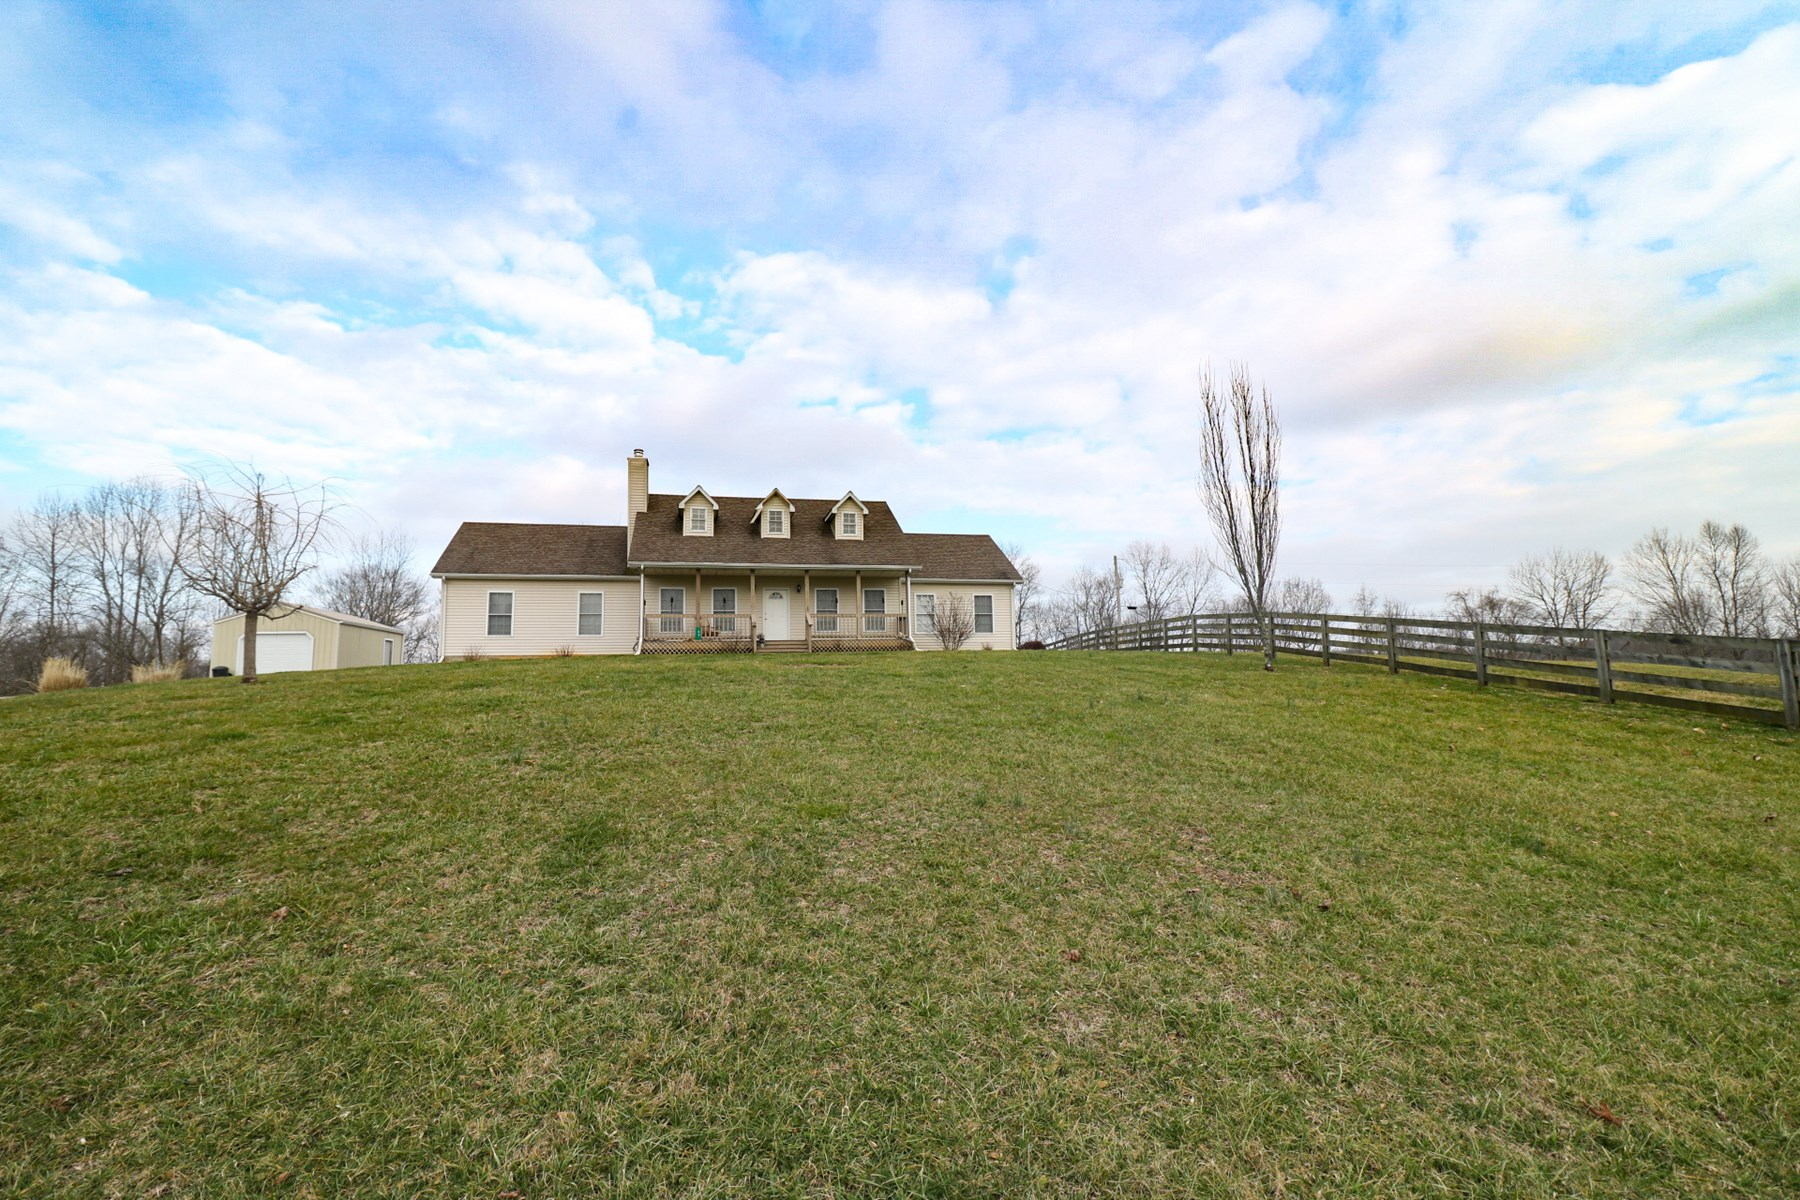 Hobby Farm, Country home and barn, w/ hunting for sale in KY